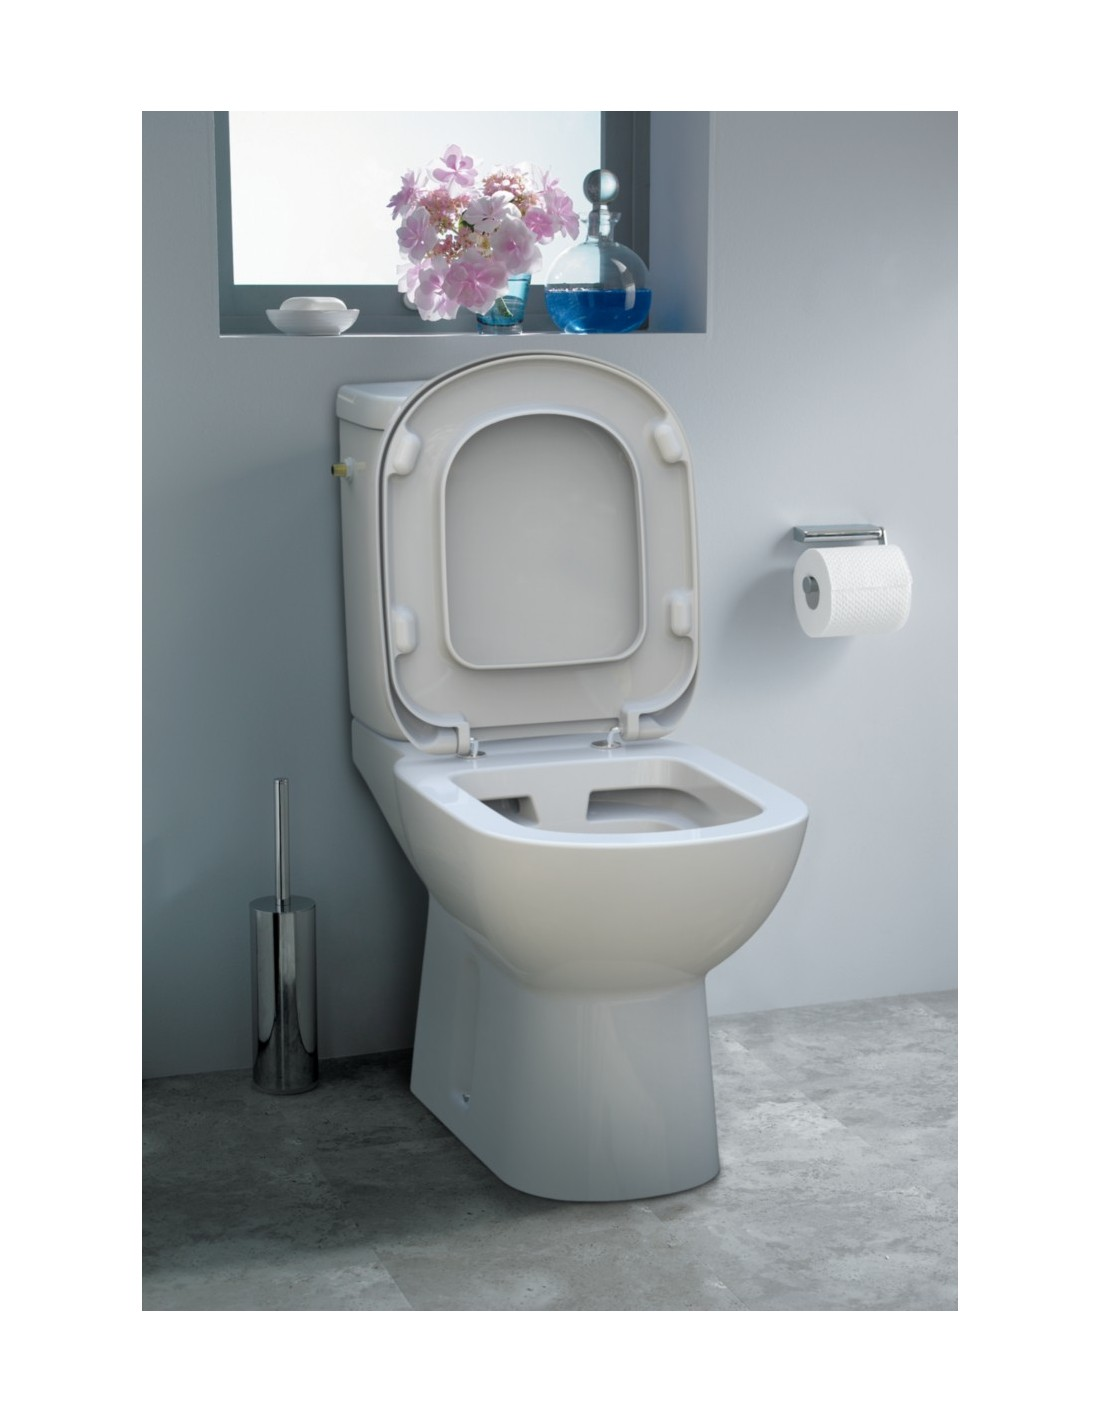 Wc suspendu ideal standard sans bride awesome cuvette - Wc suspendu sans bride ...